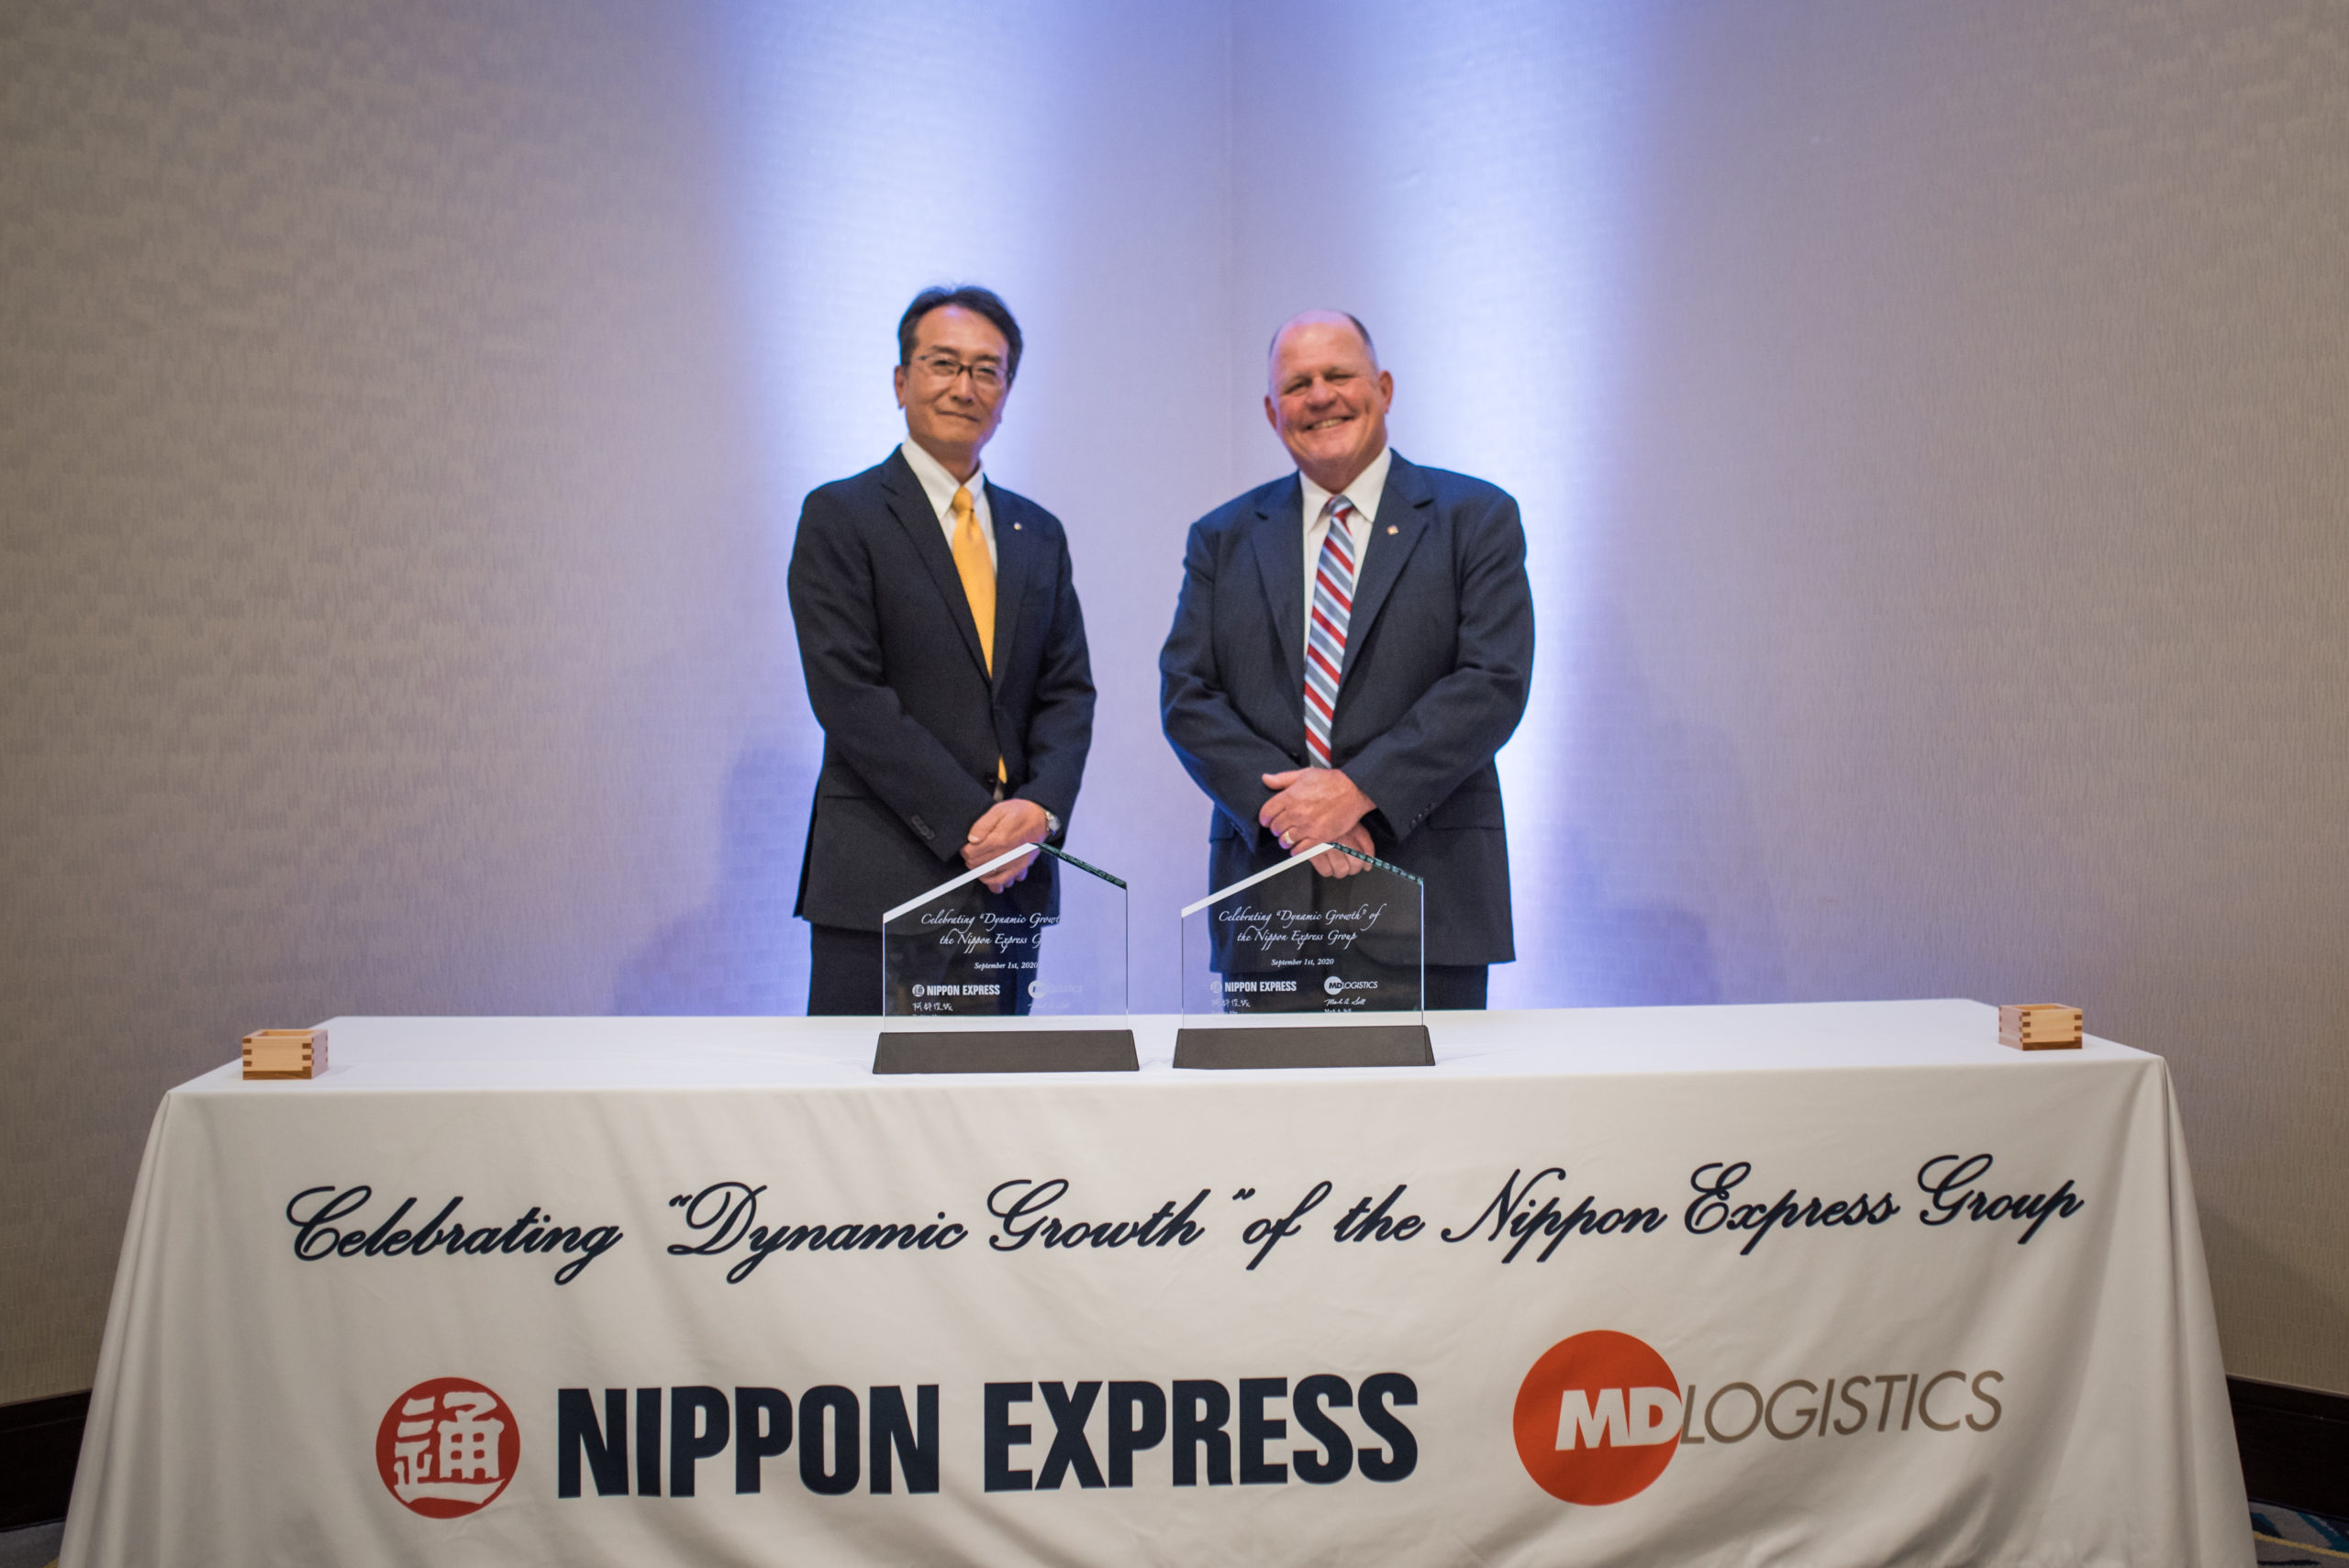 executives from Nippon Express and MD Logistics